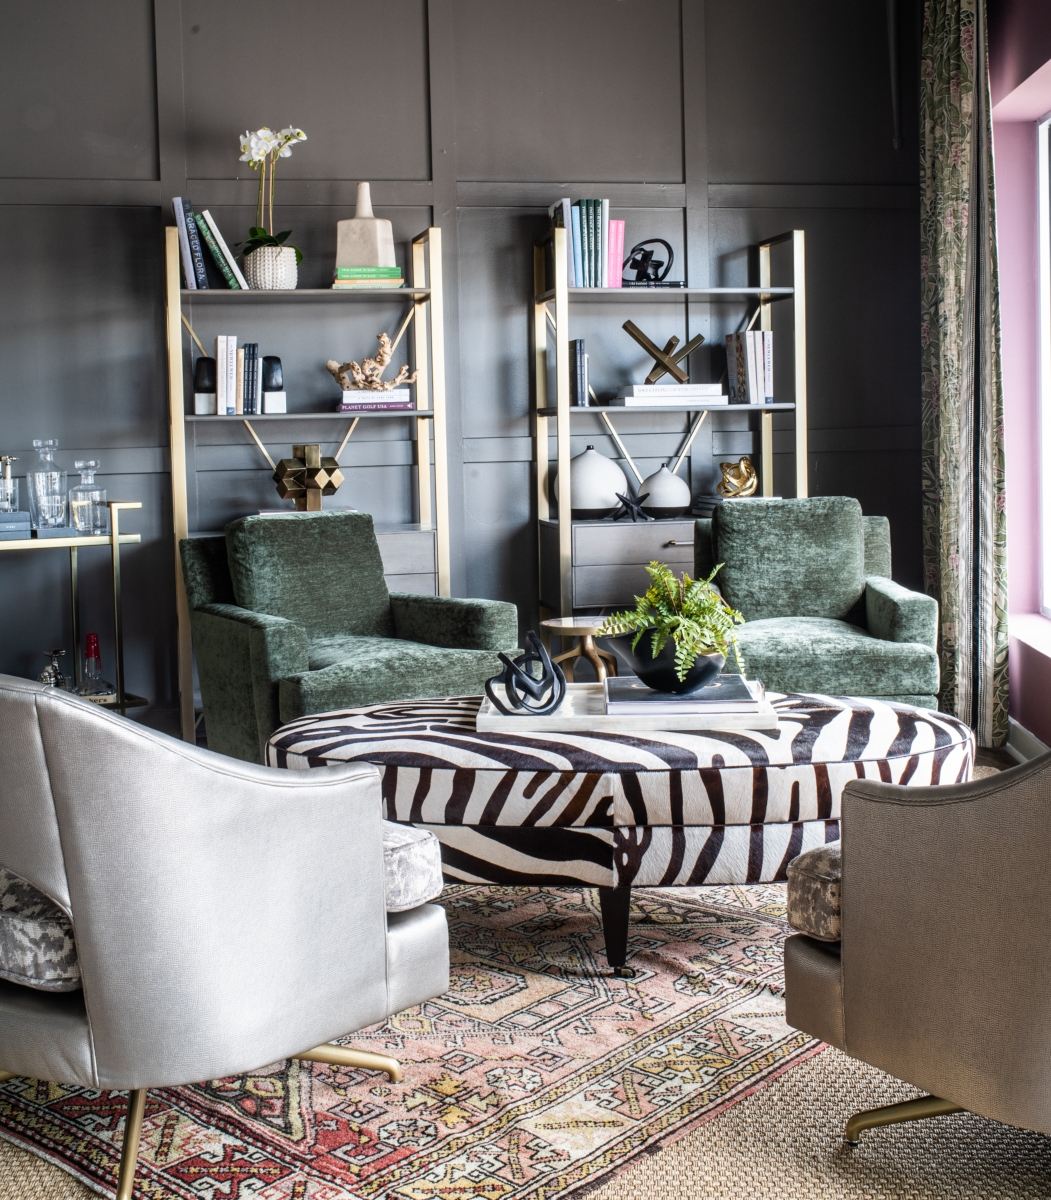 The New Normal of Interior Design